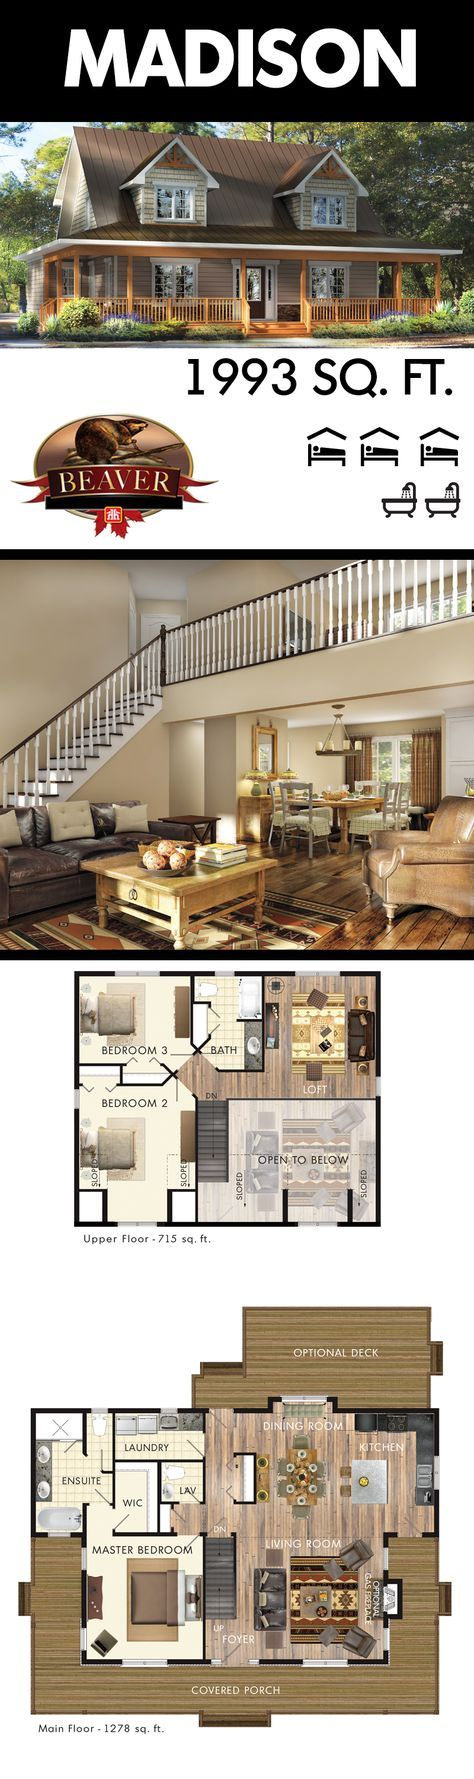 The Madison Is Designed With A Cape Cod Feel A Sprawling Open Concept Living Room With Two Story Ceiling Cr House Plan With Loft New House Plans House Layouts